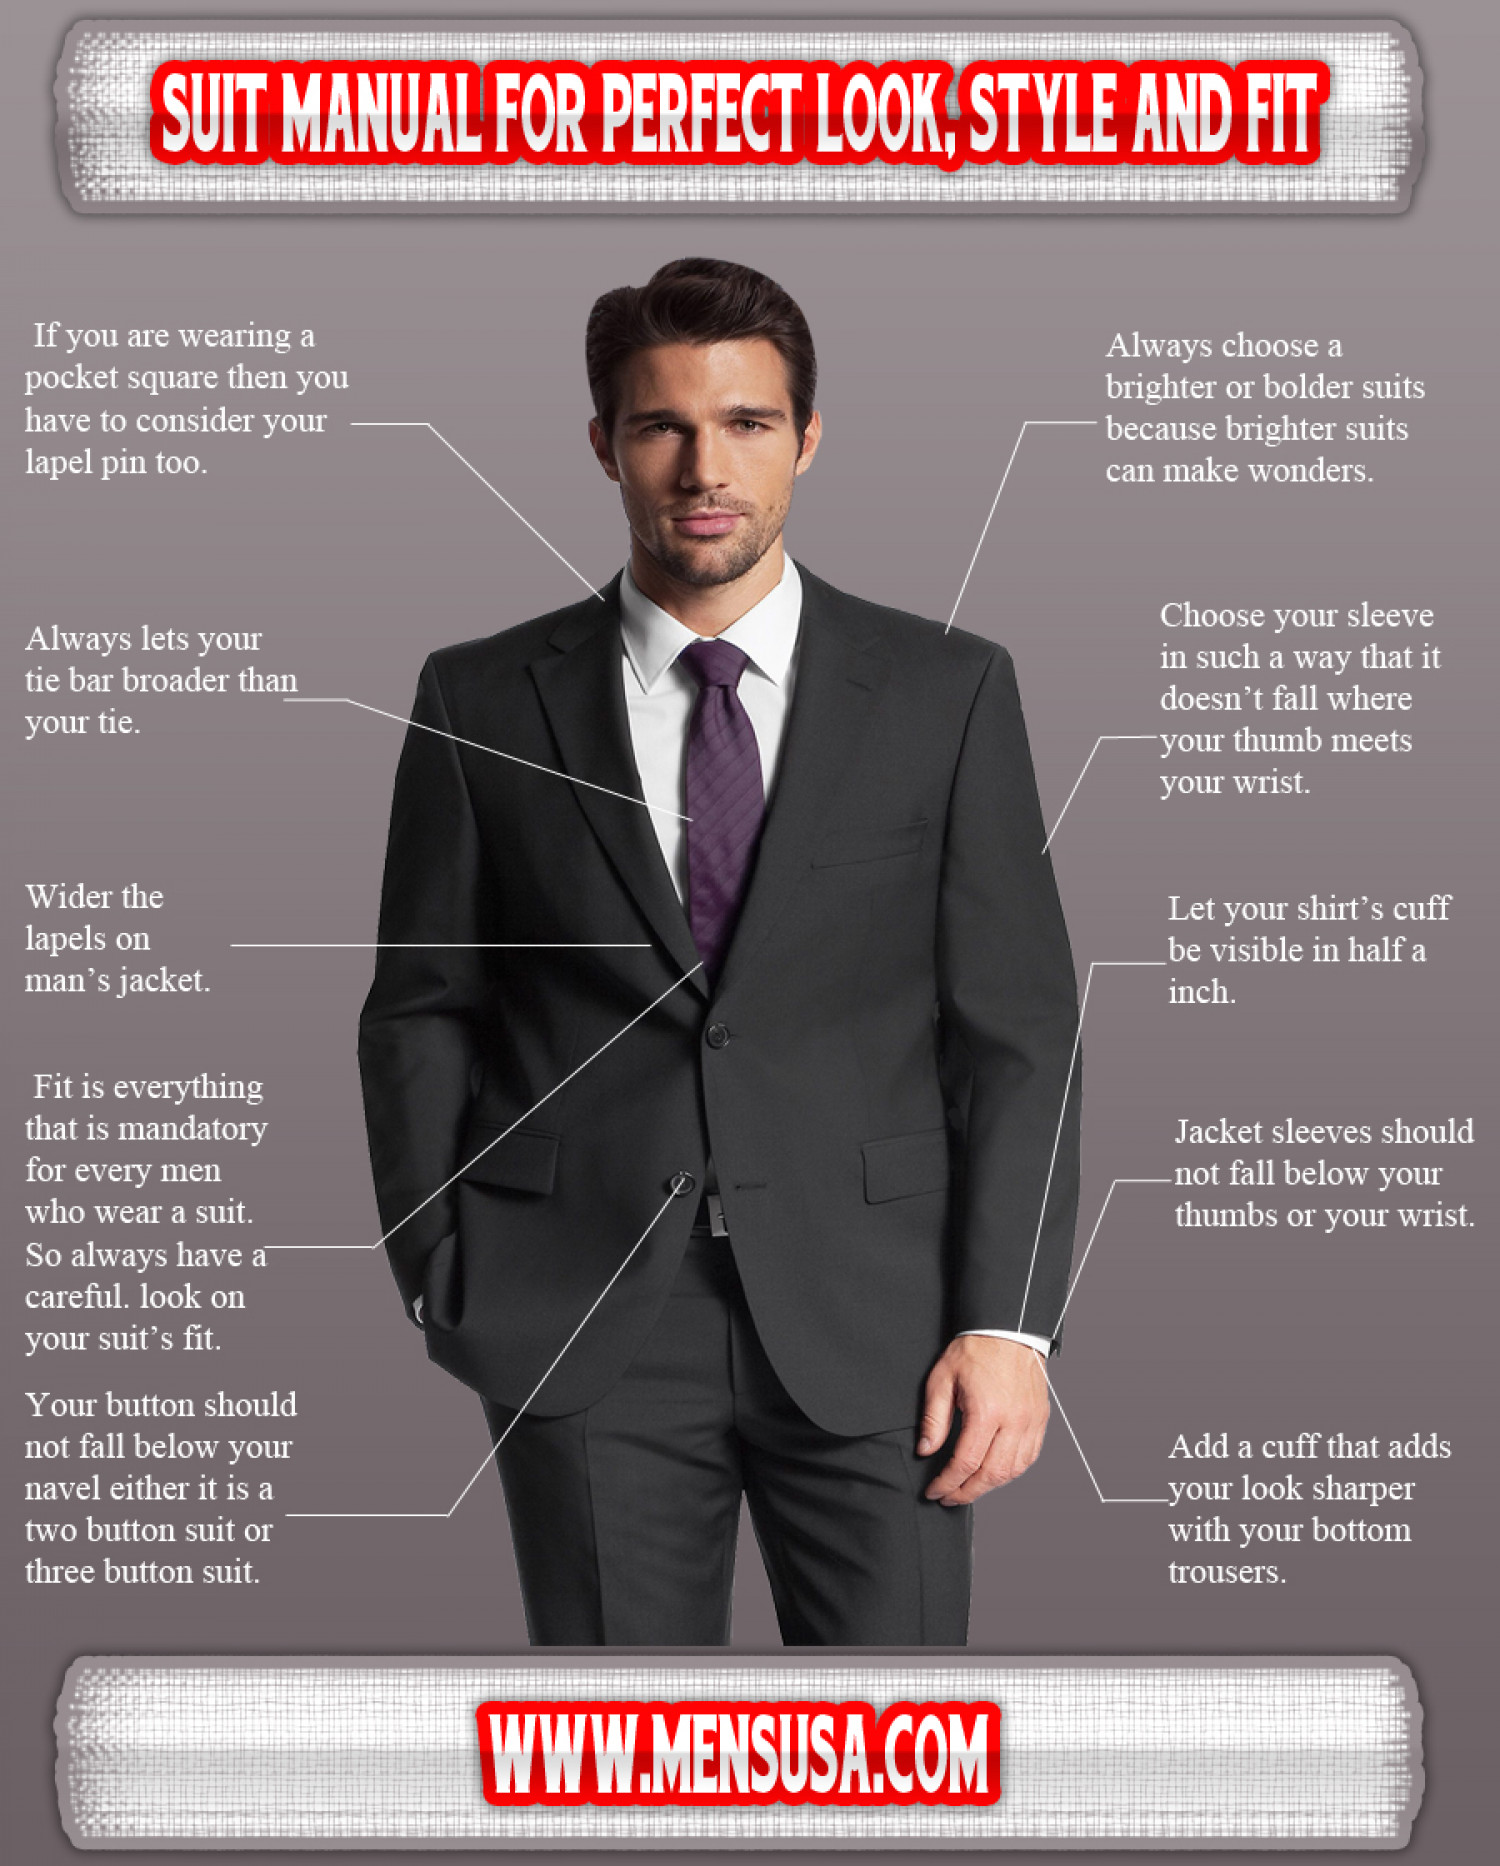 98e9e33c445 Suit manual for perfect look